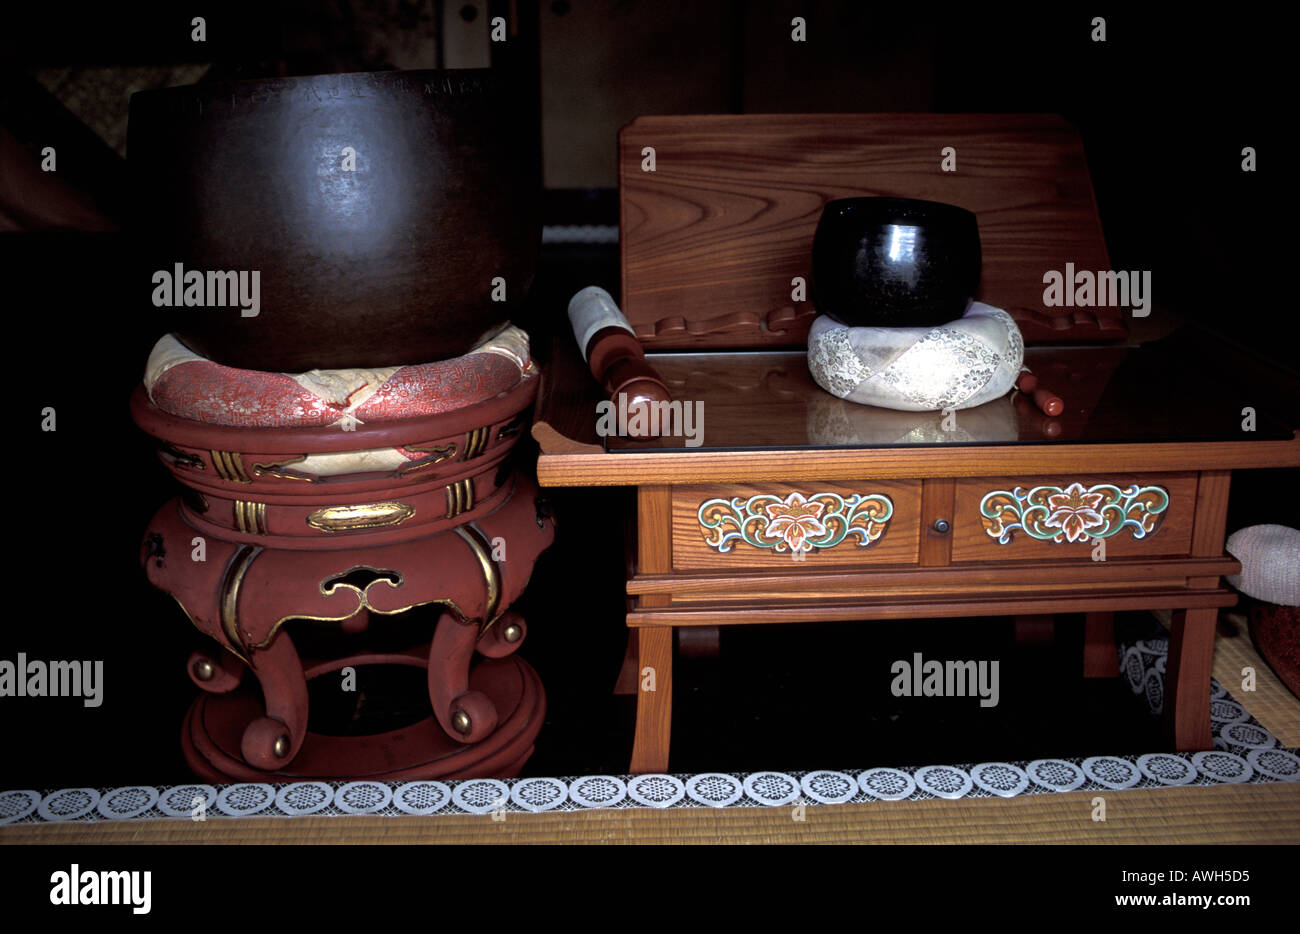 Buddhist paraphernalia for meditation in Zuiho in Temple Kyoto Japan - Stock Image